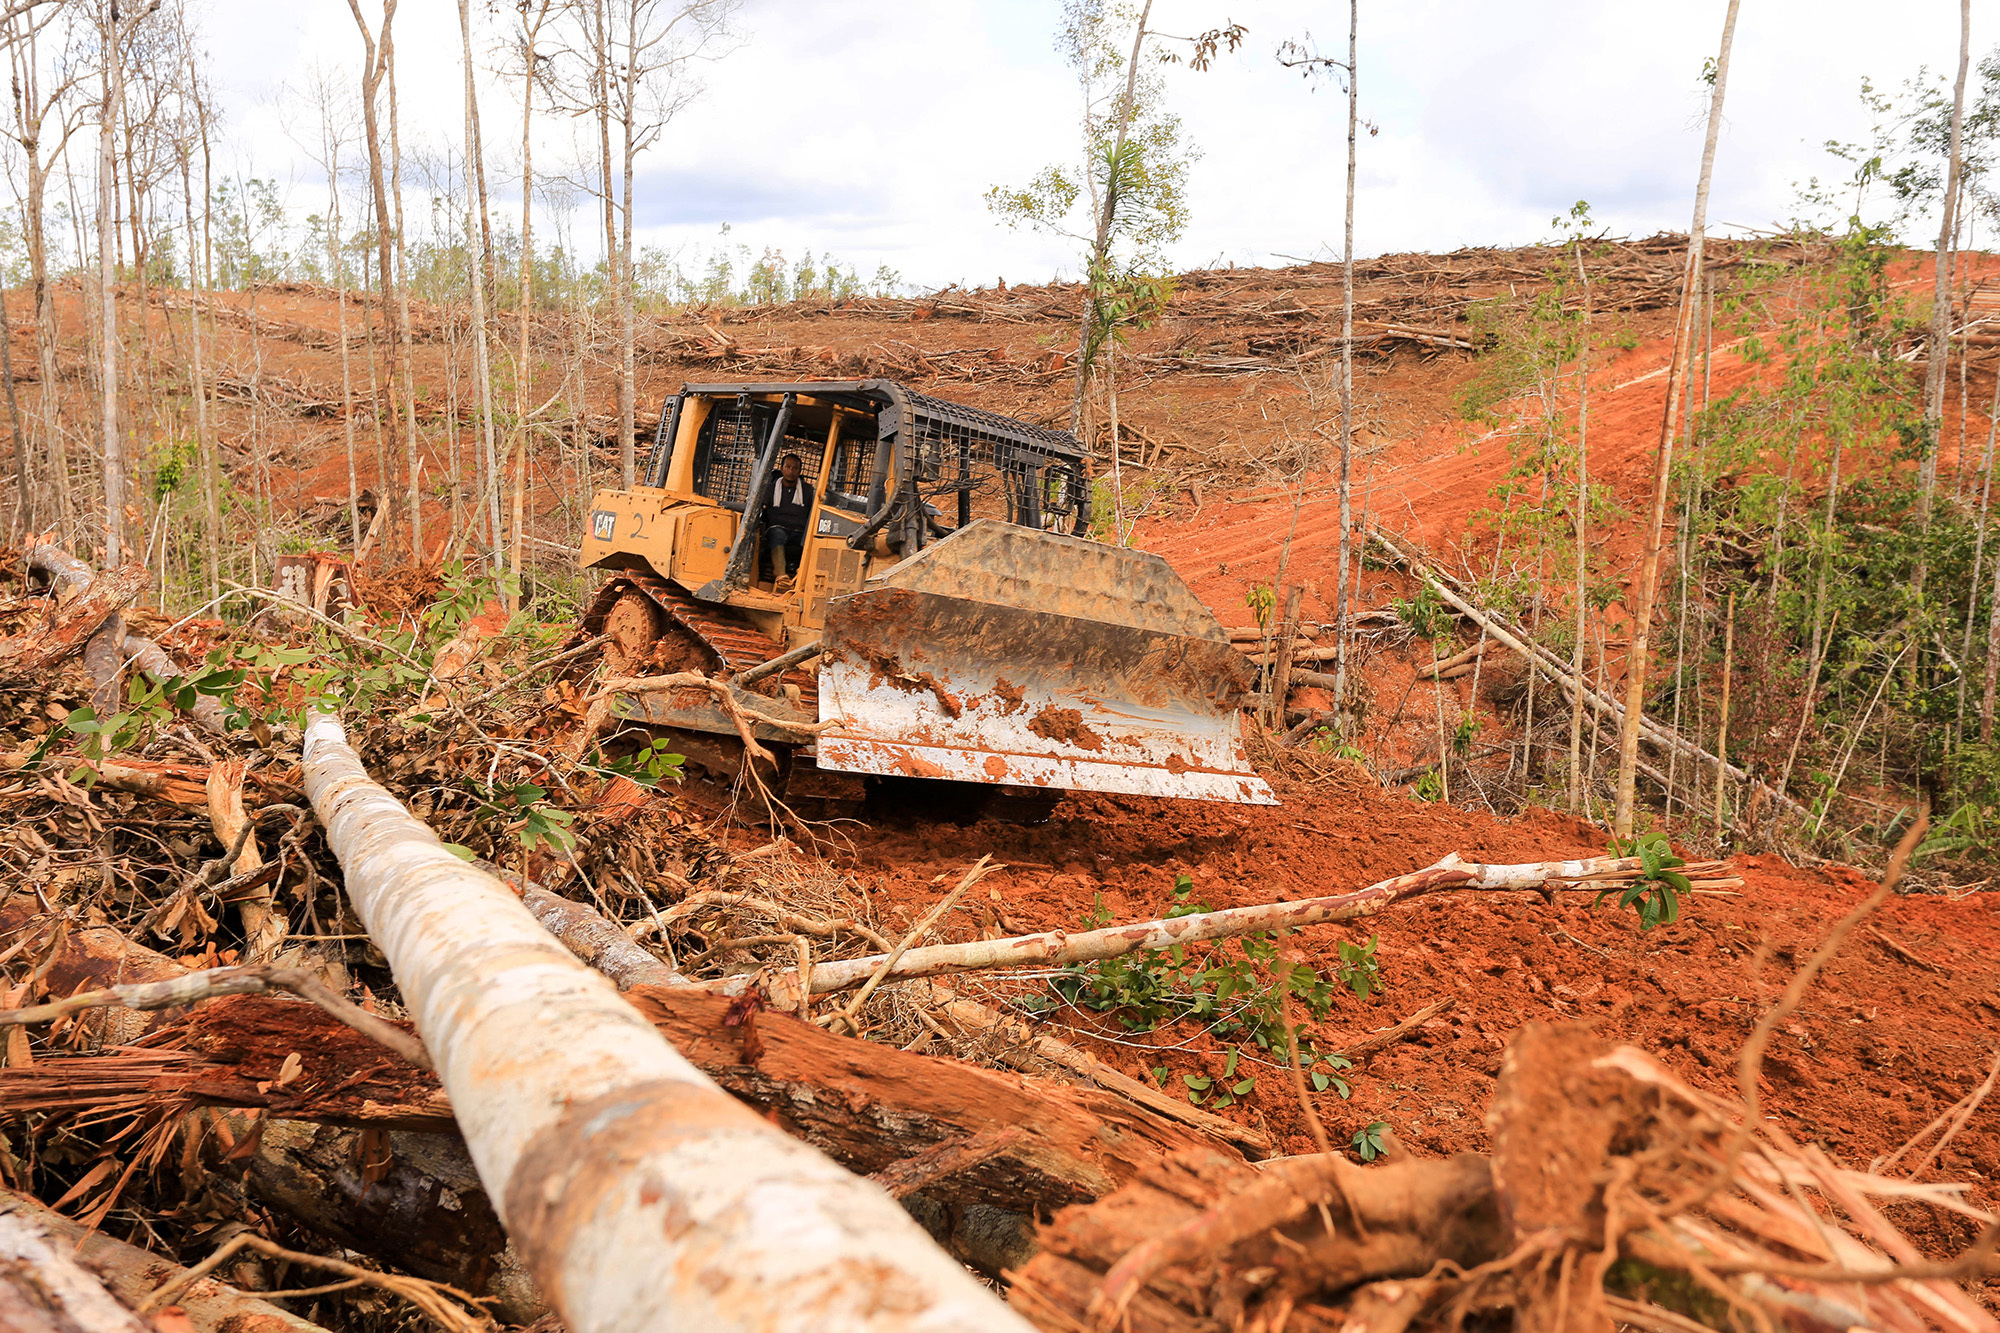 Land being cleared for oil palm plantations in Indonesia